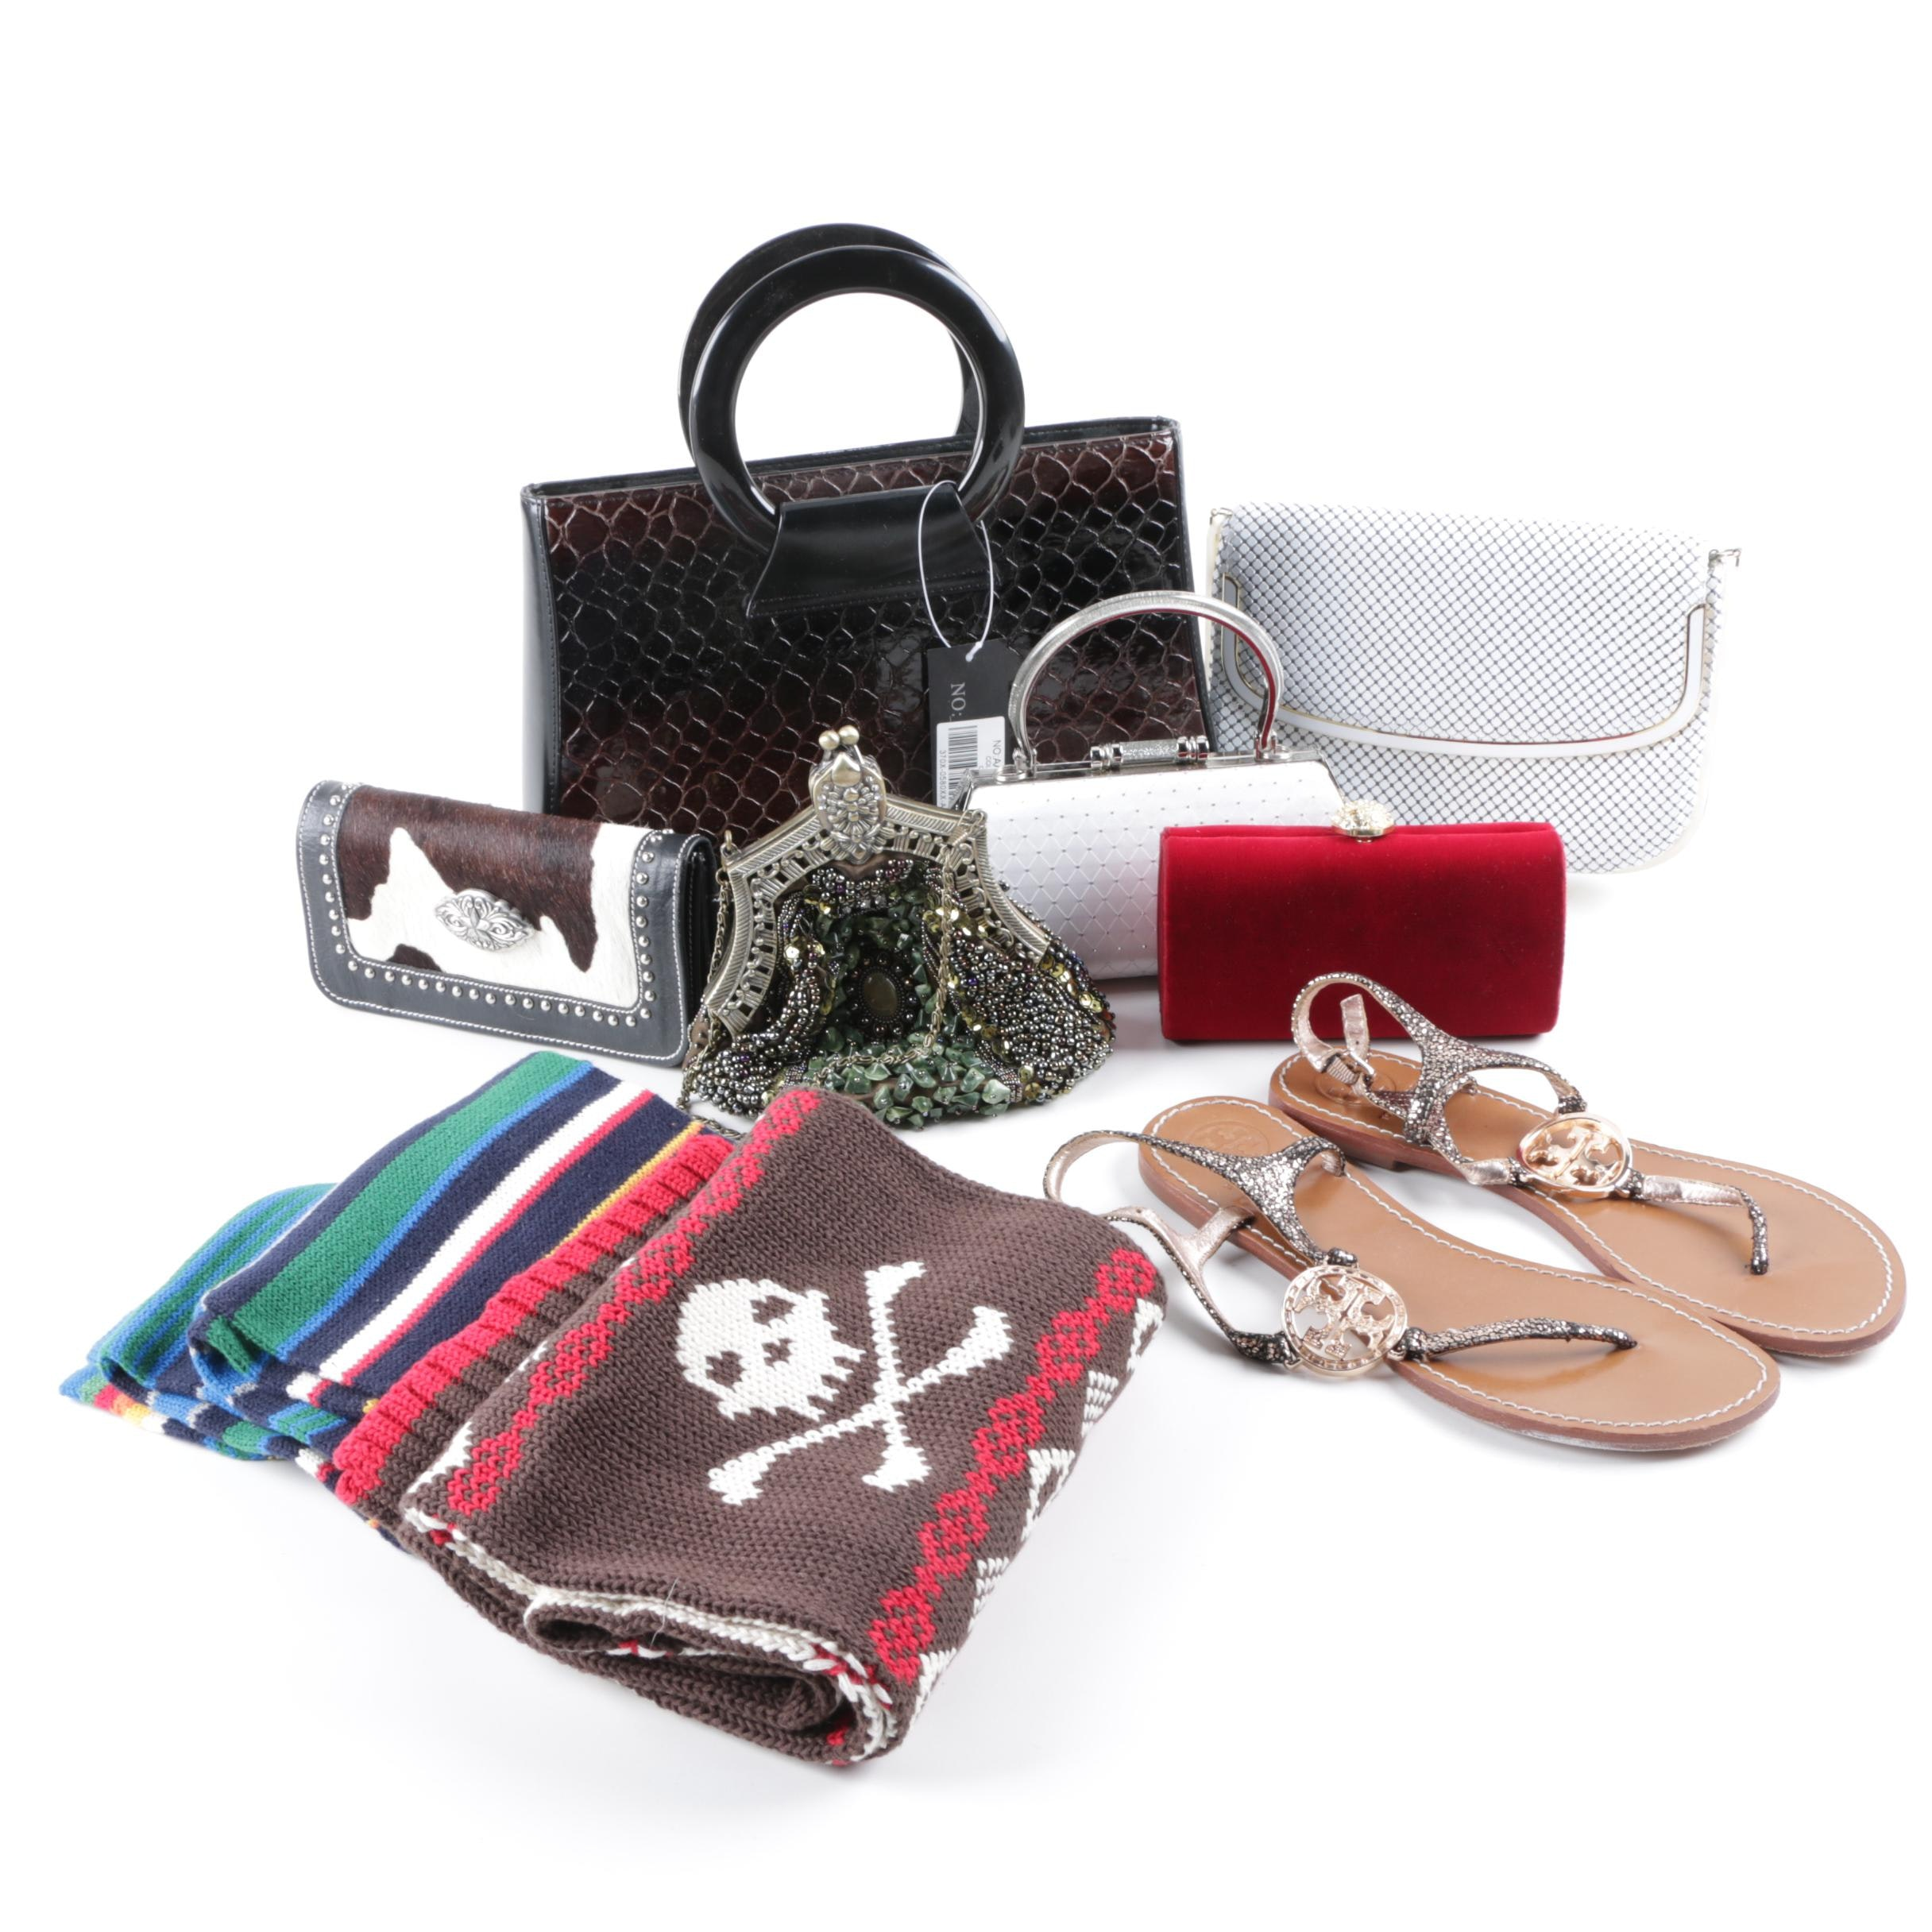 Tory Burch Sandals with Variety of Handbags, Scarves and Wallets